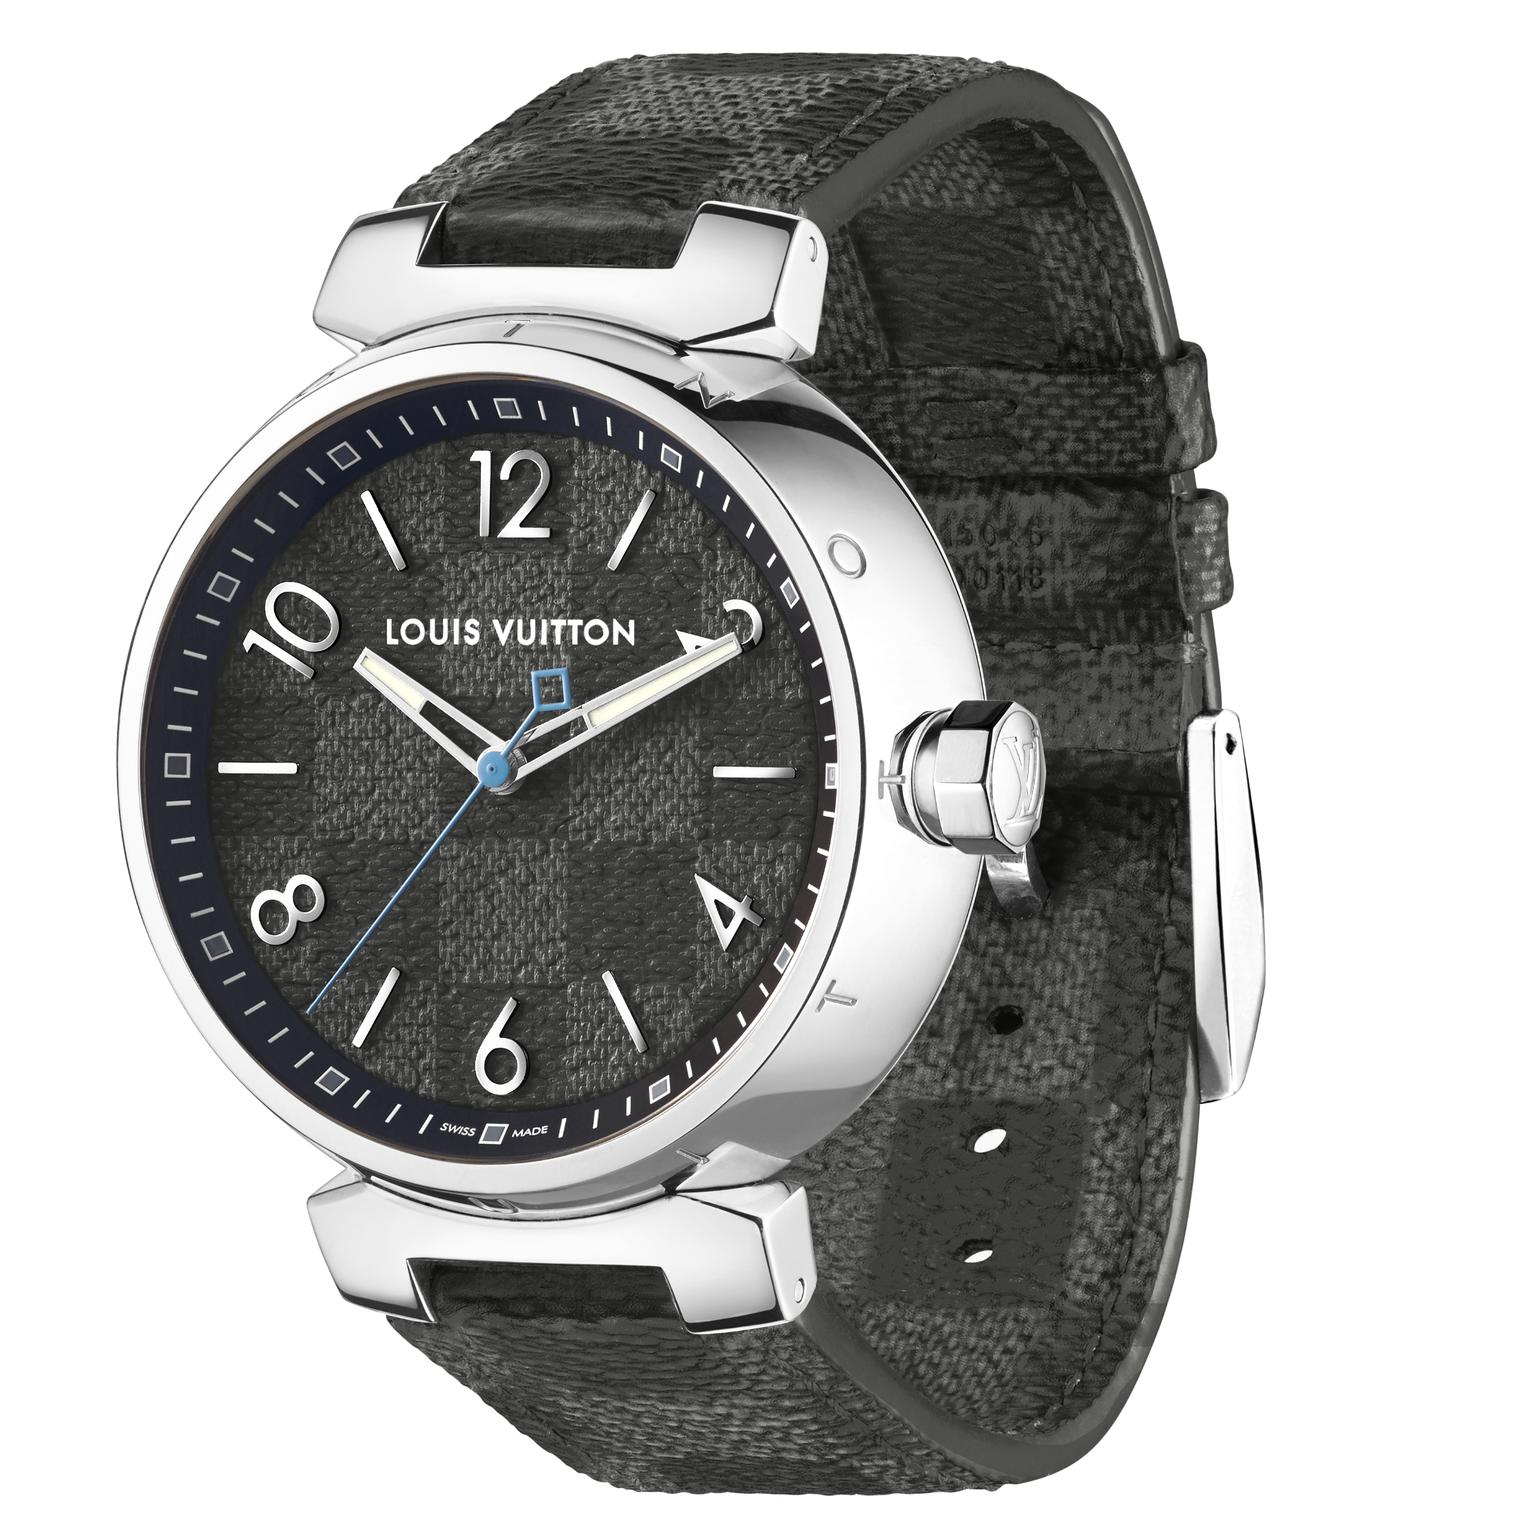 Louis Vuitton Icon Tambour Damier Graphite mens watch